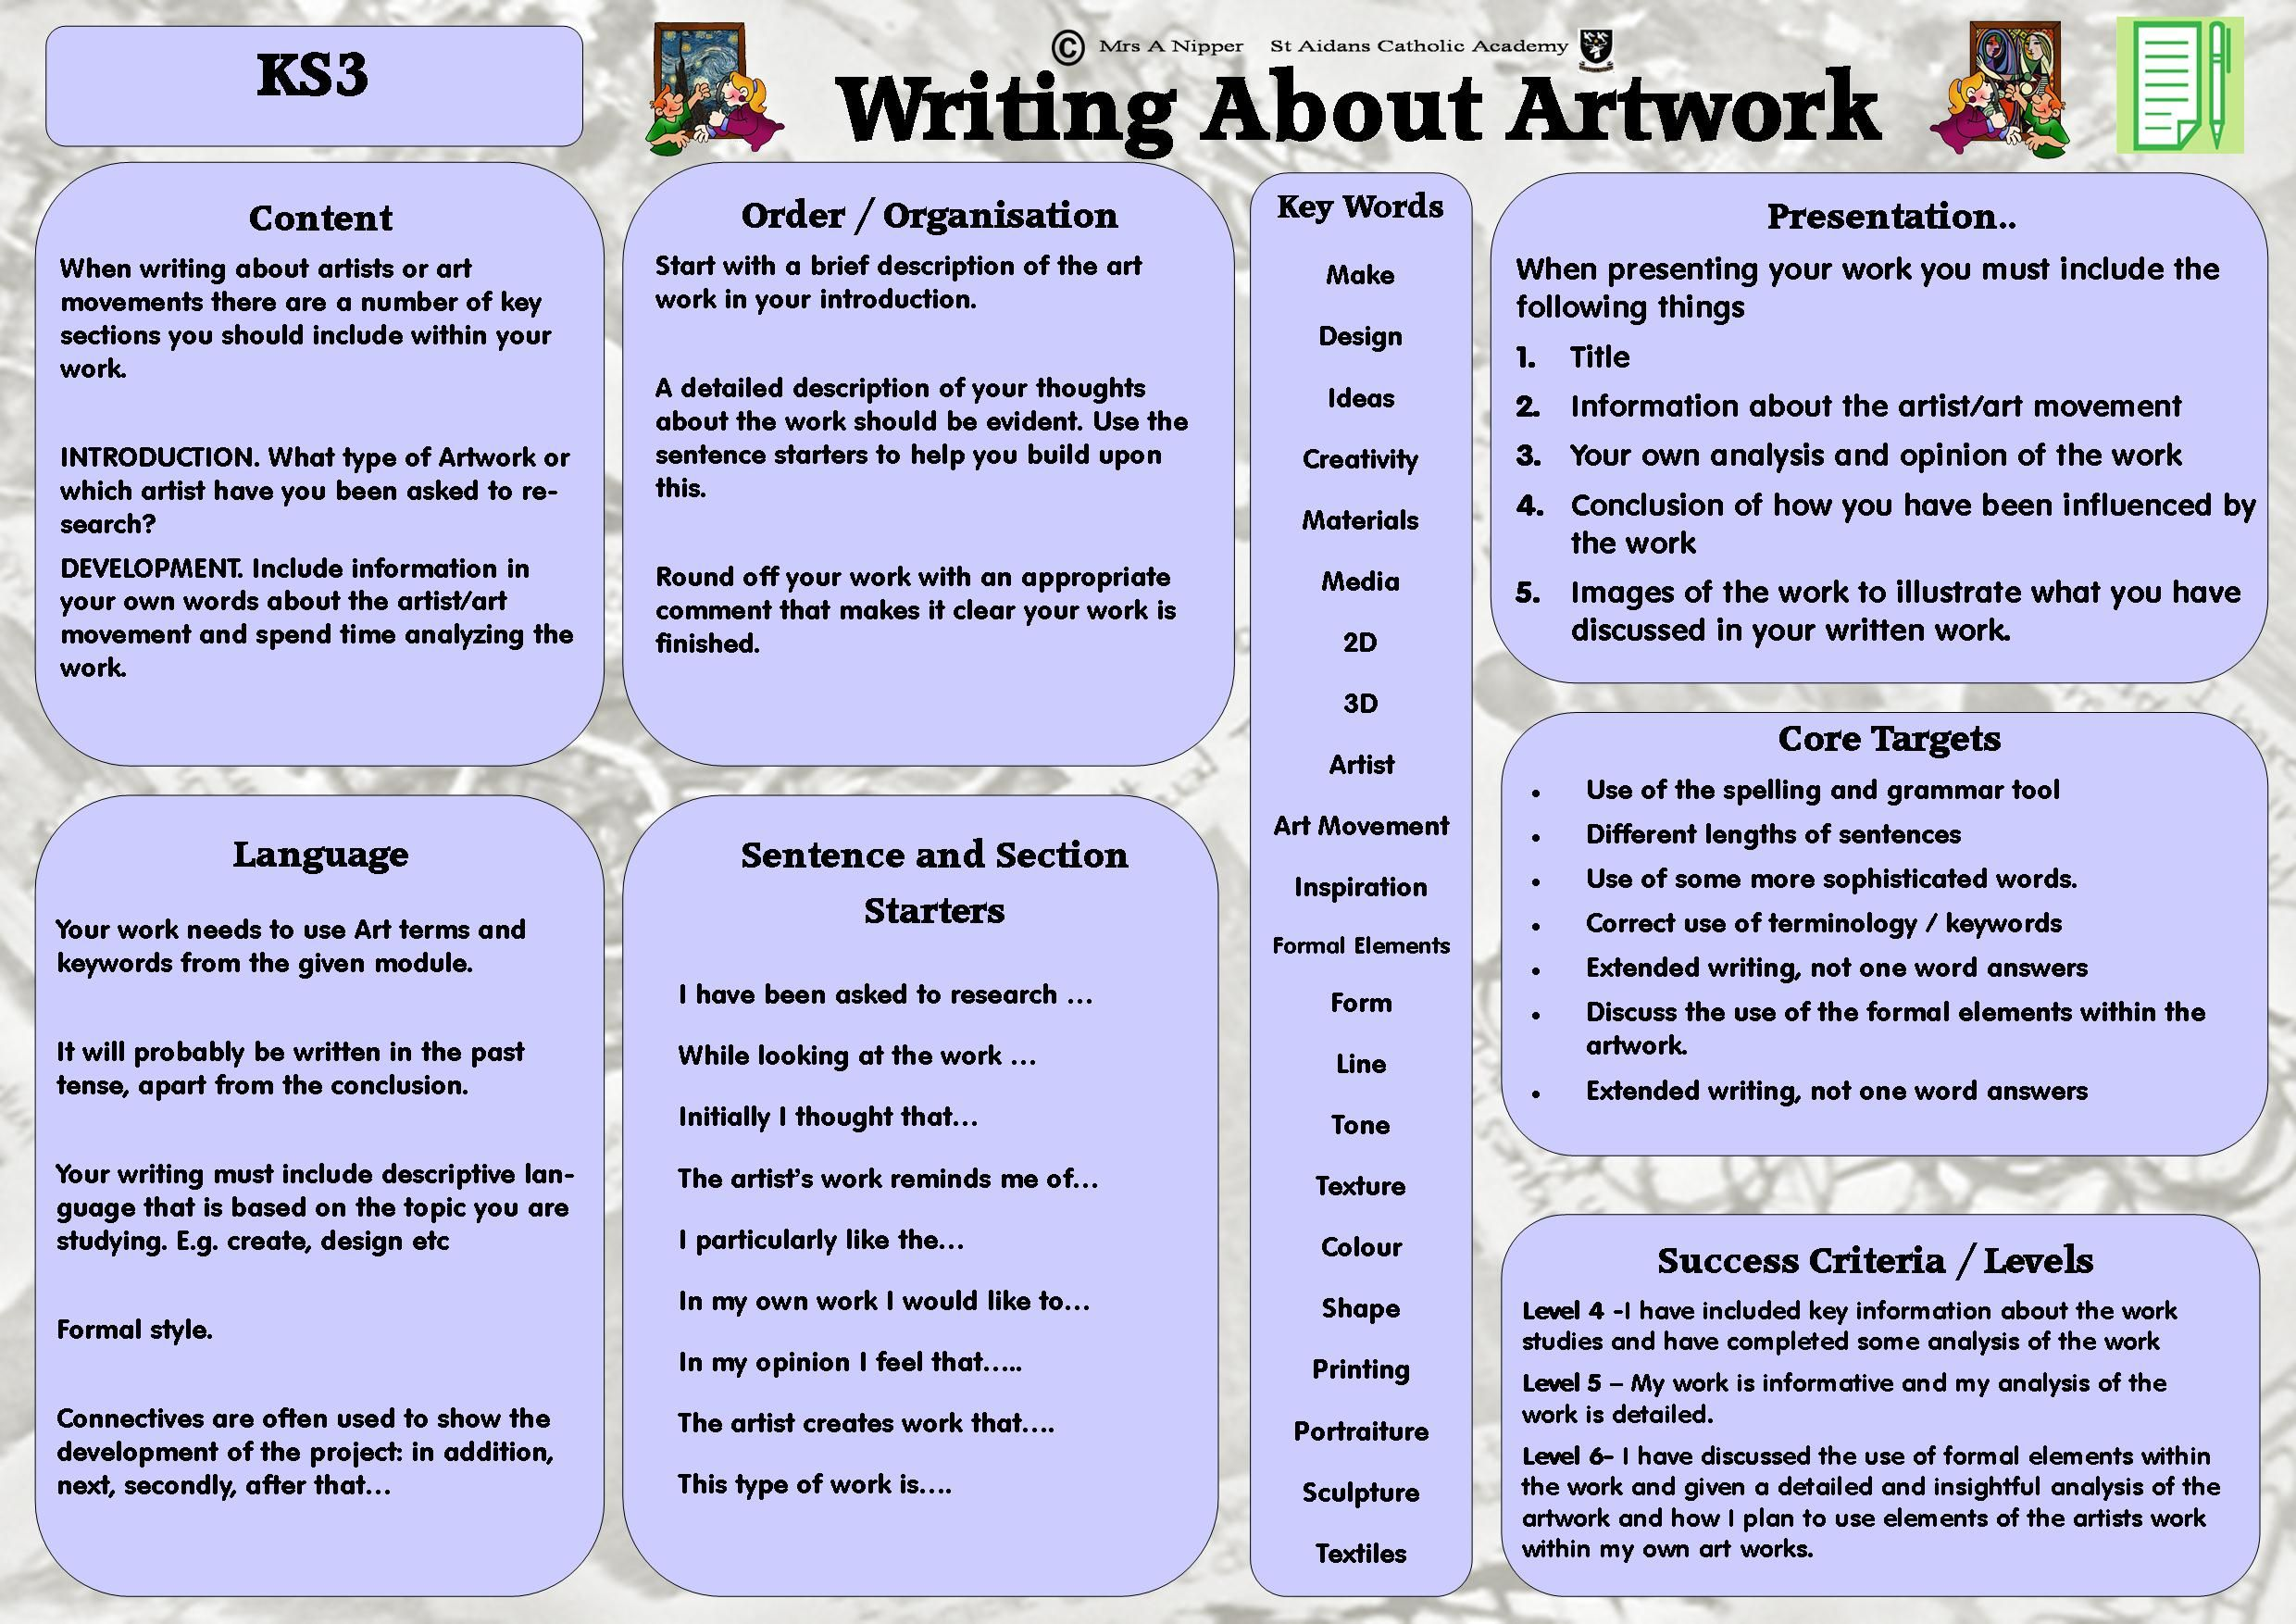 Ks3 Literacy Mat Includes Key Words And Helpful Hints For Writing About Art And Looking At